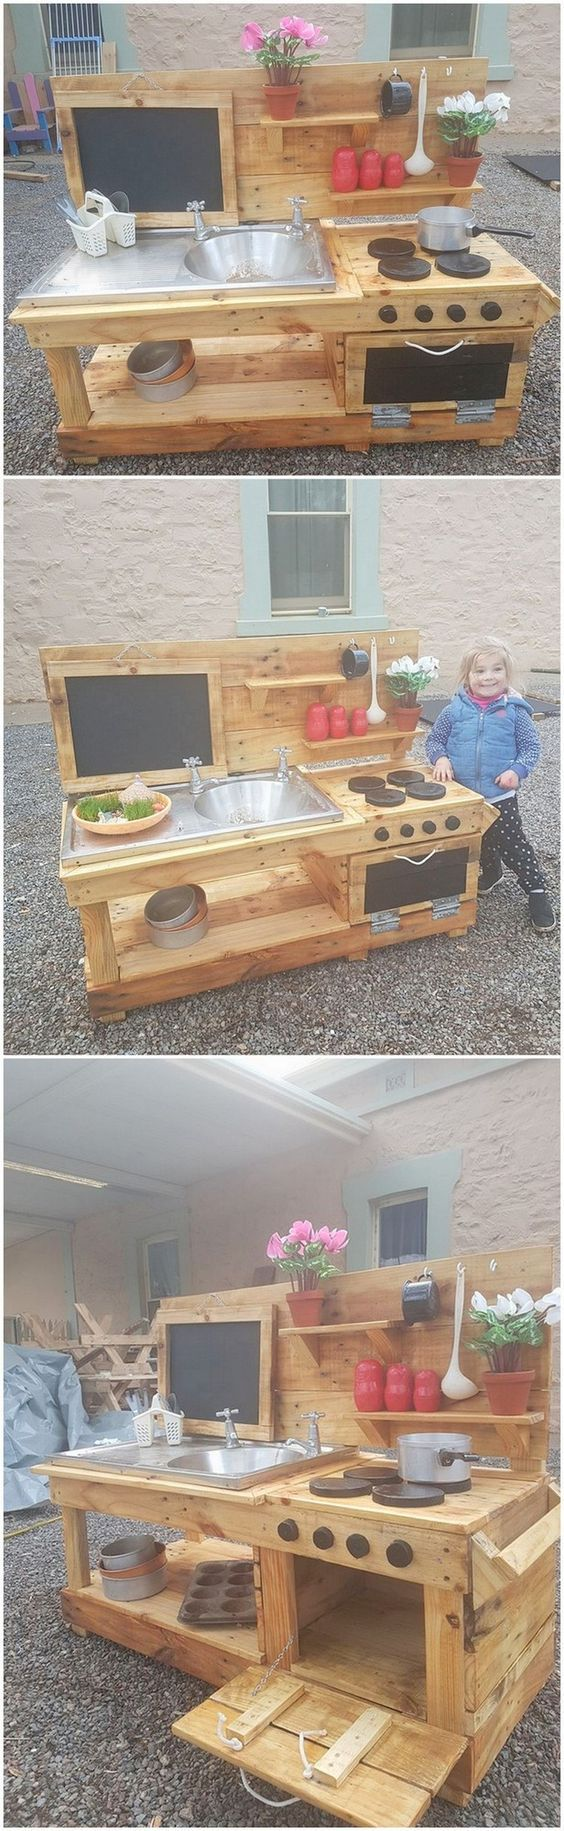 Best 25 Wood Pallets Ideas On Pinterest Pallet Projects Pallet Ideas And Top Pallet Ideas